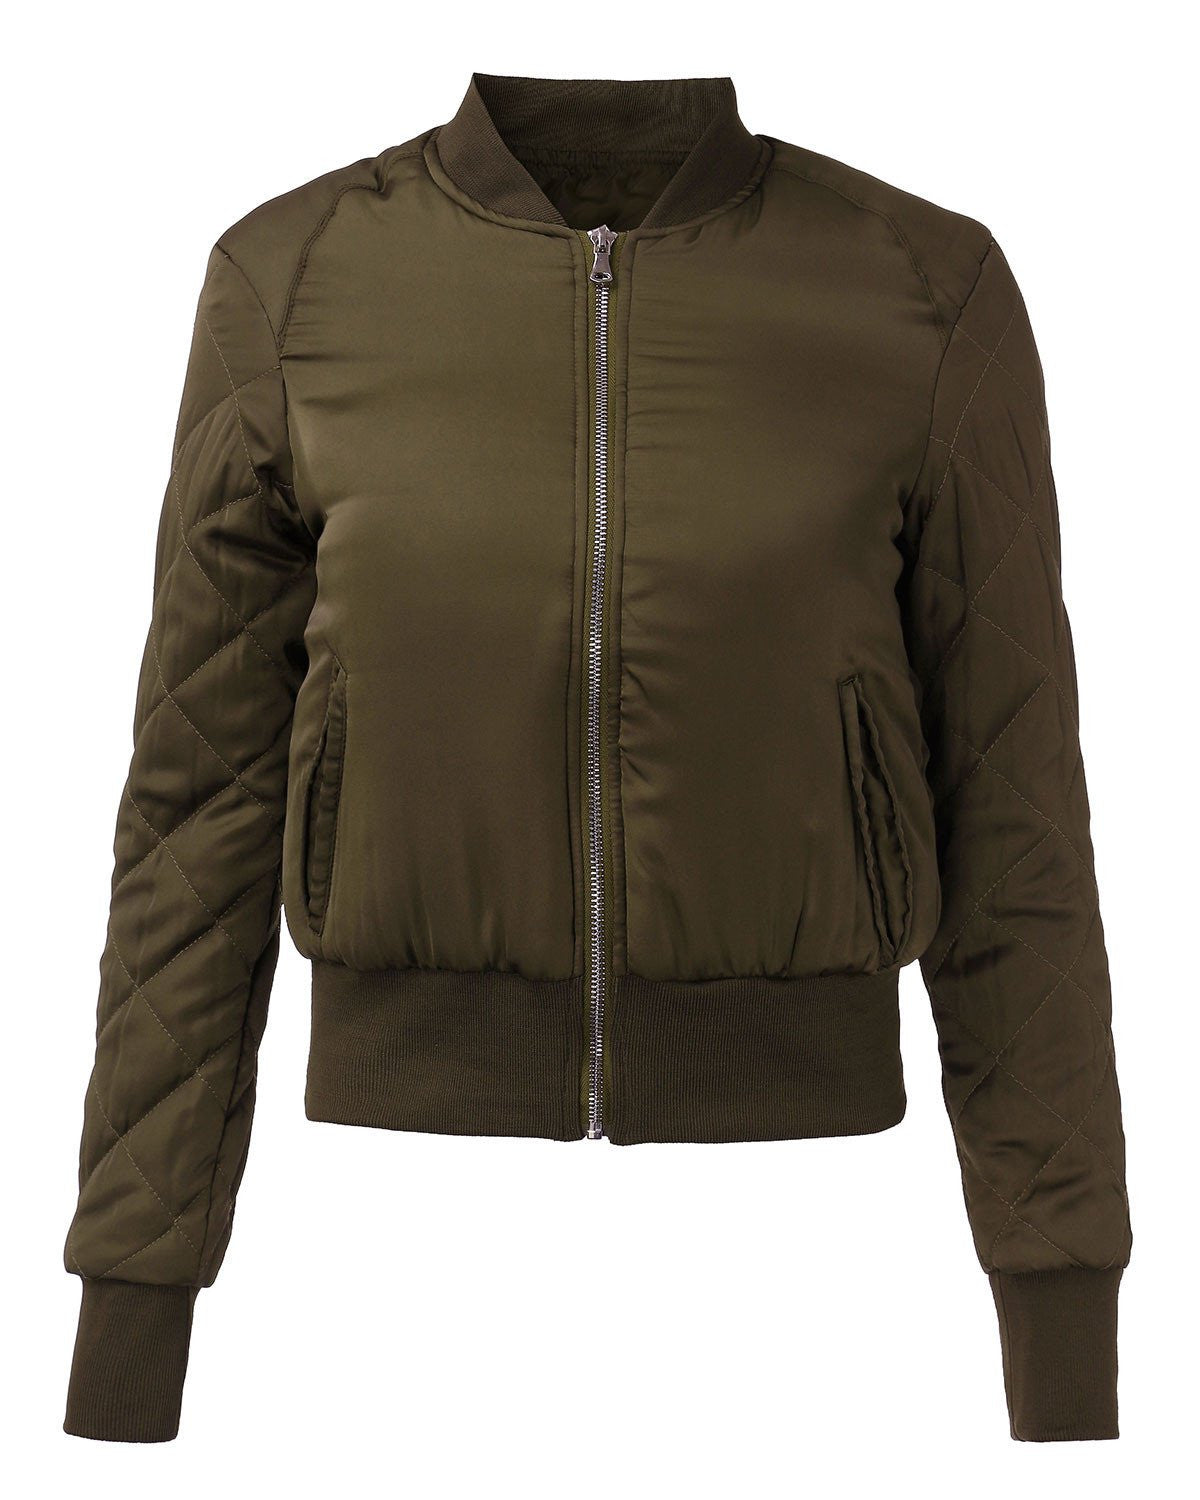 Warm Womens Quilted Jackets Short Thick Fleece Padded Bomber Jacket Coat Pilots Outerwear Tops Plus SizeArmy GreenSa